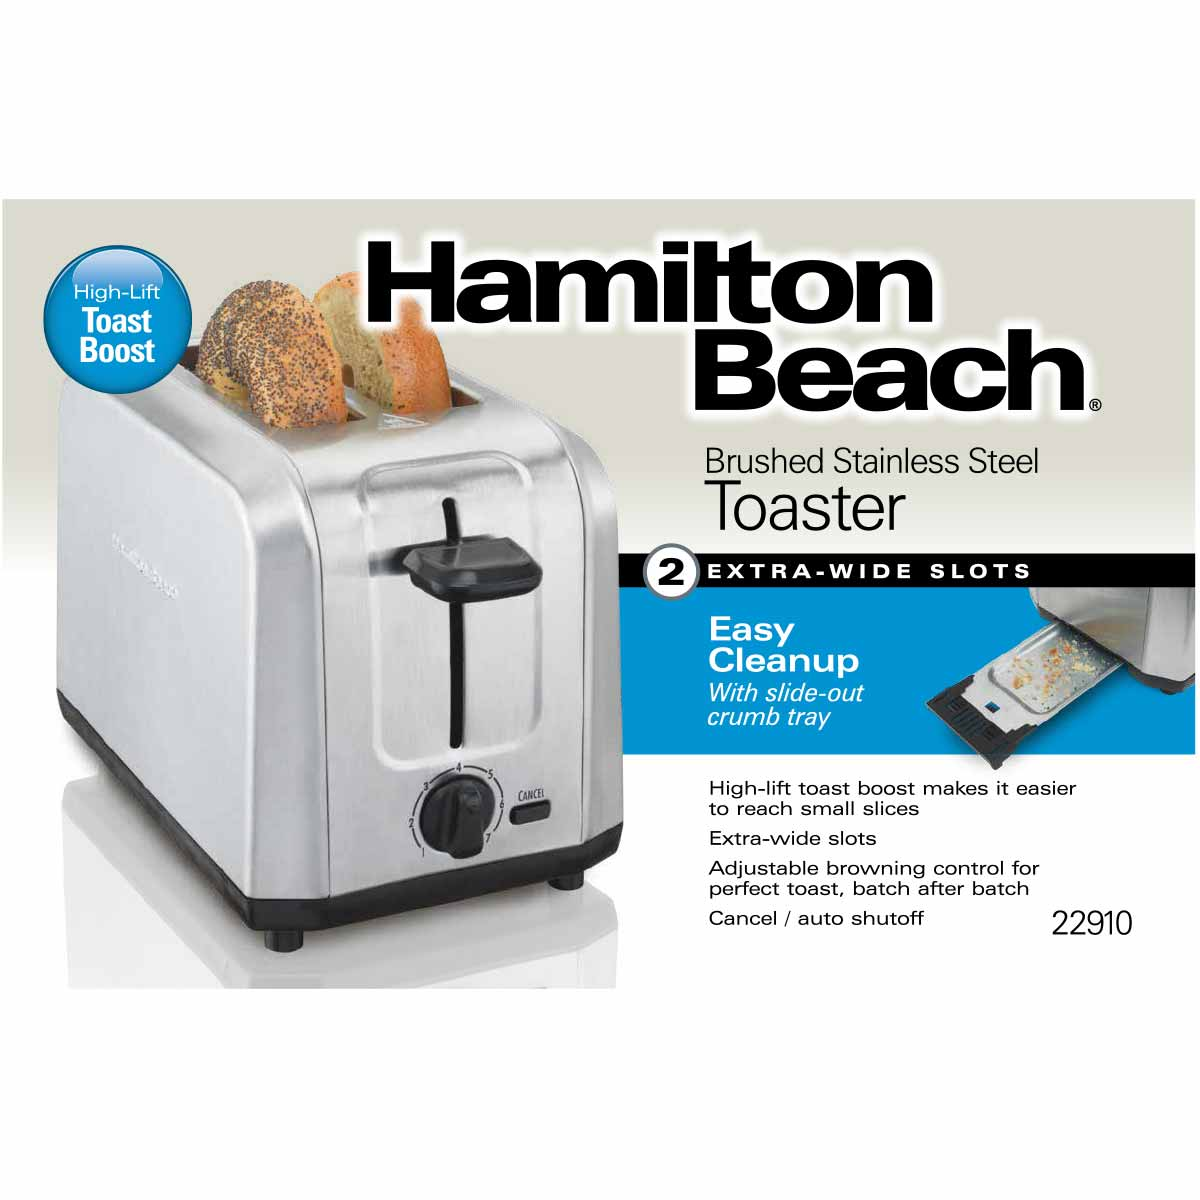 Brushed Stainless Steel 2-Slice Toaster (22910)